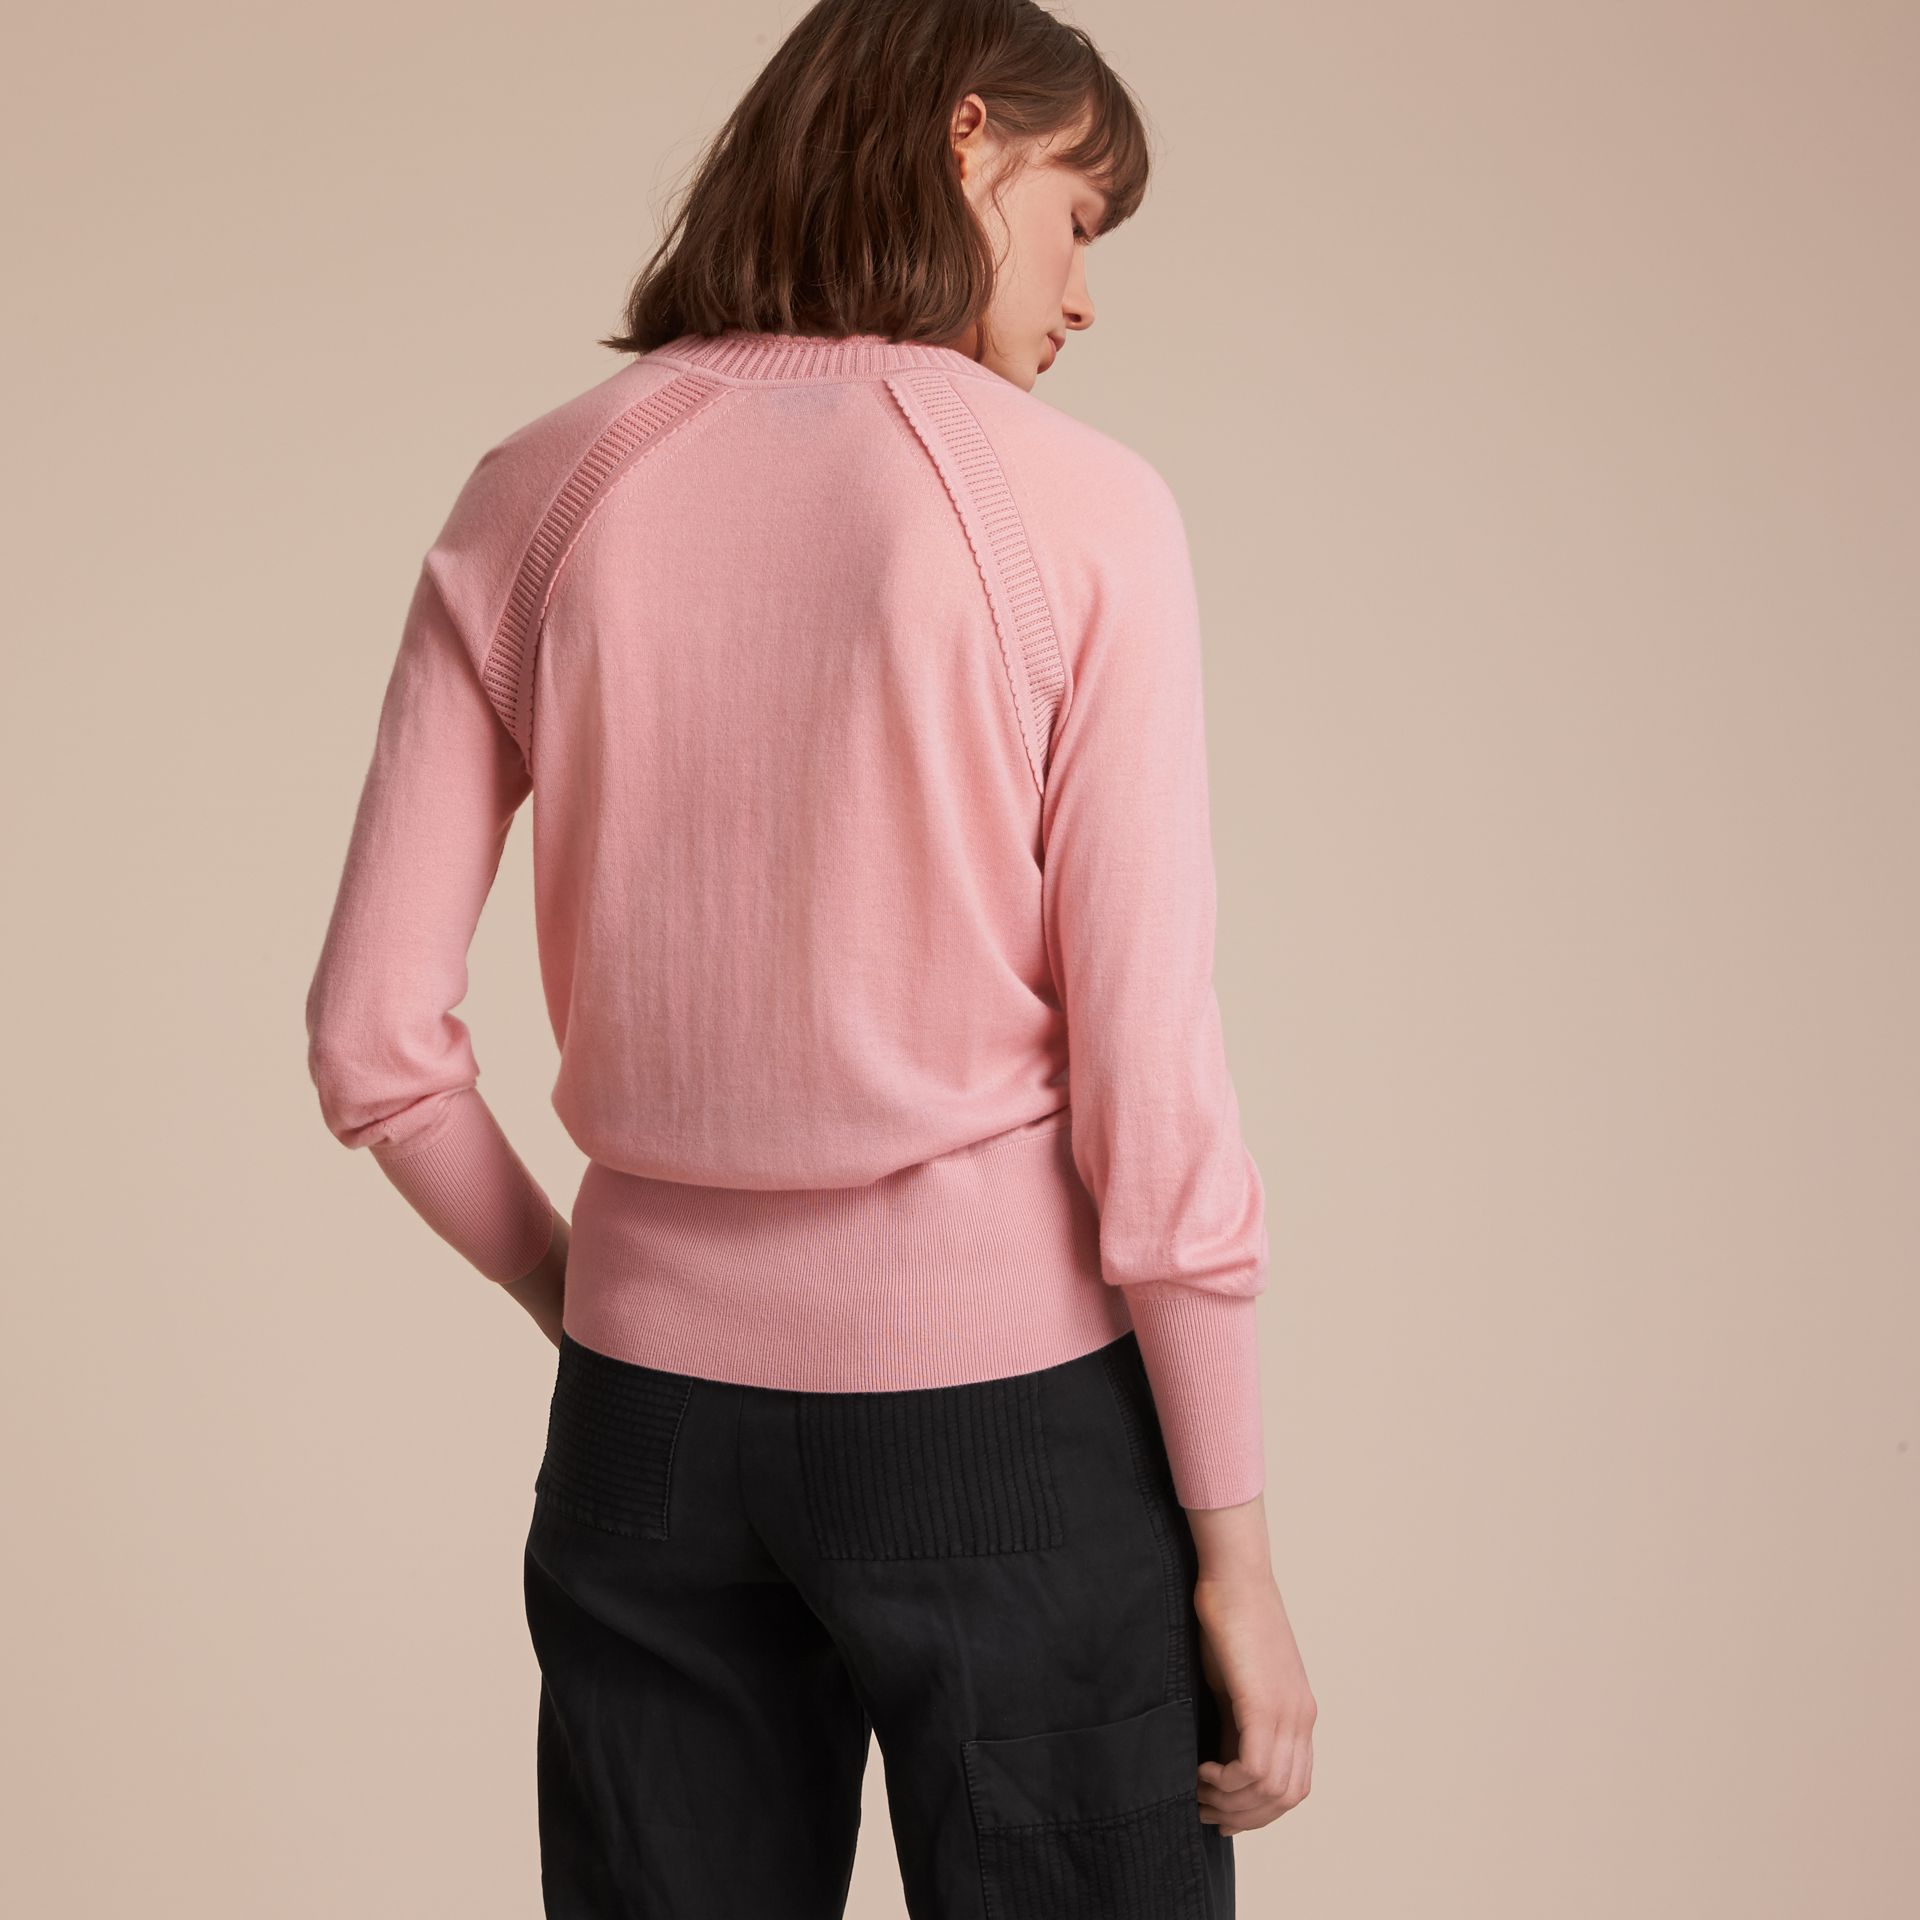 Open-knit Detail Cashmere Crew Neck Sweater in Apricot Pink - Women | Burberry - gallery image 3